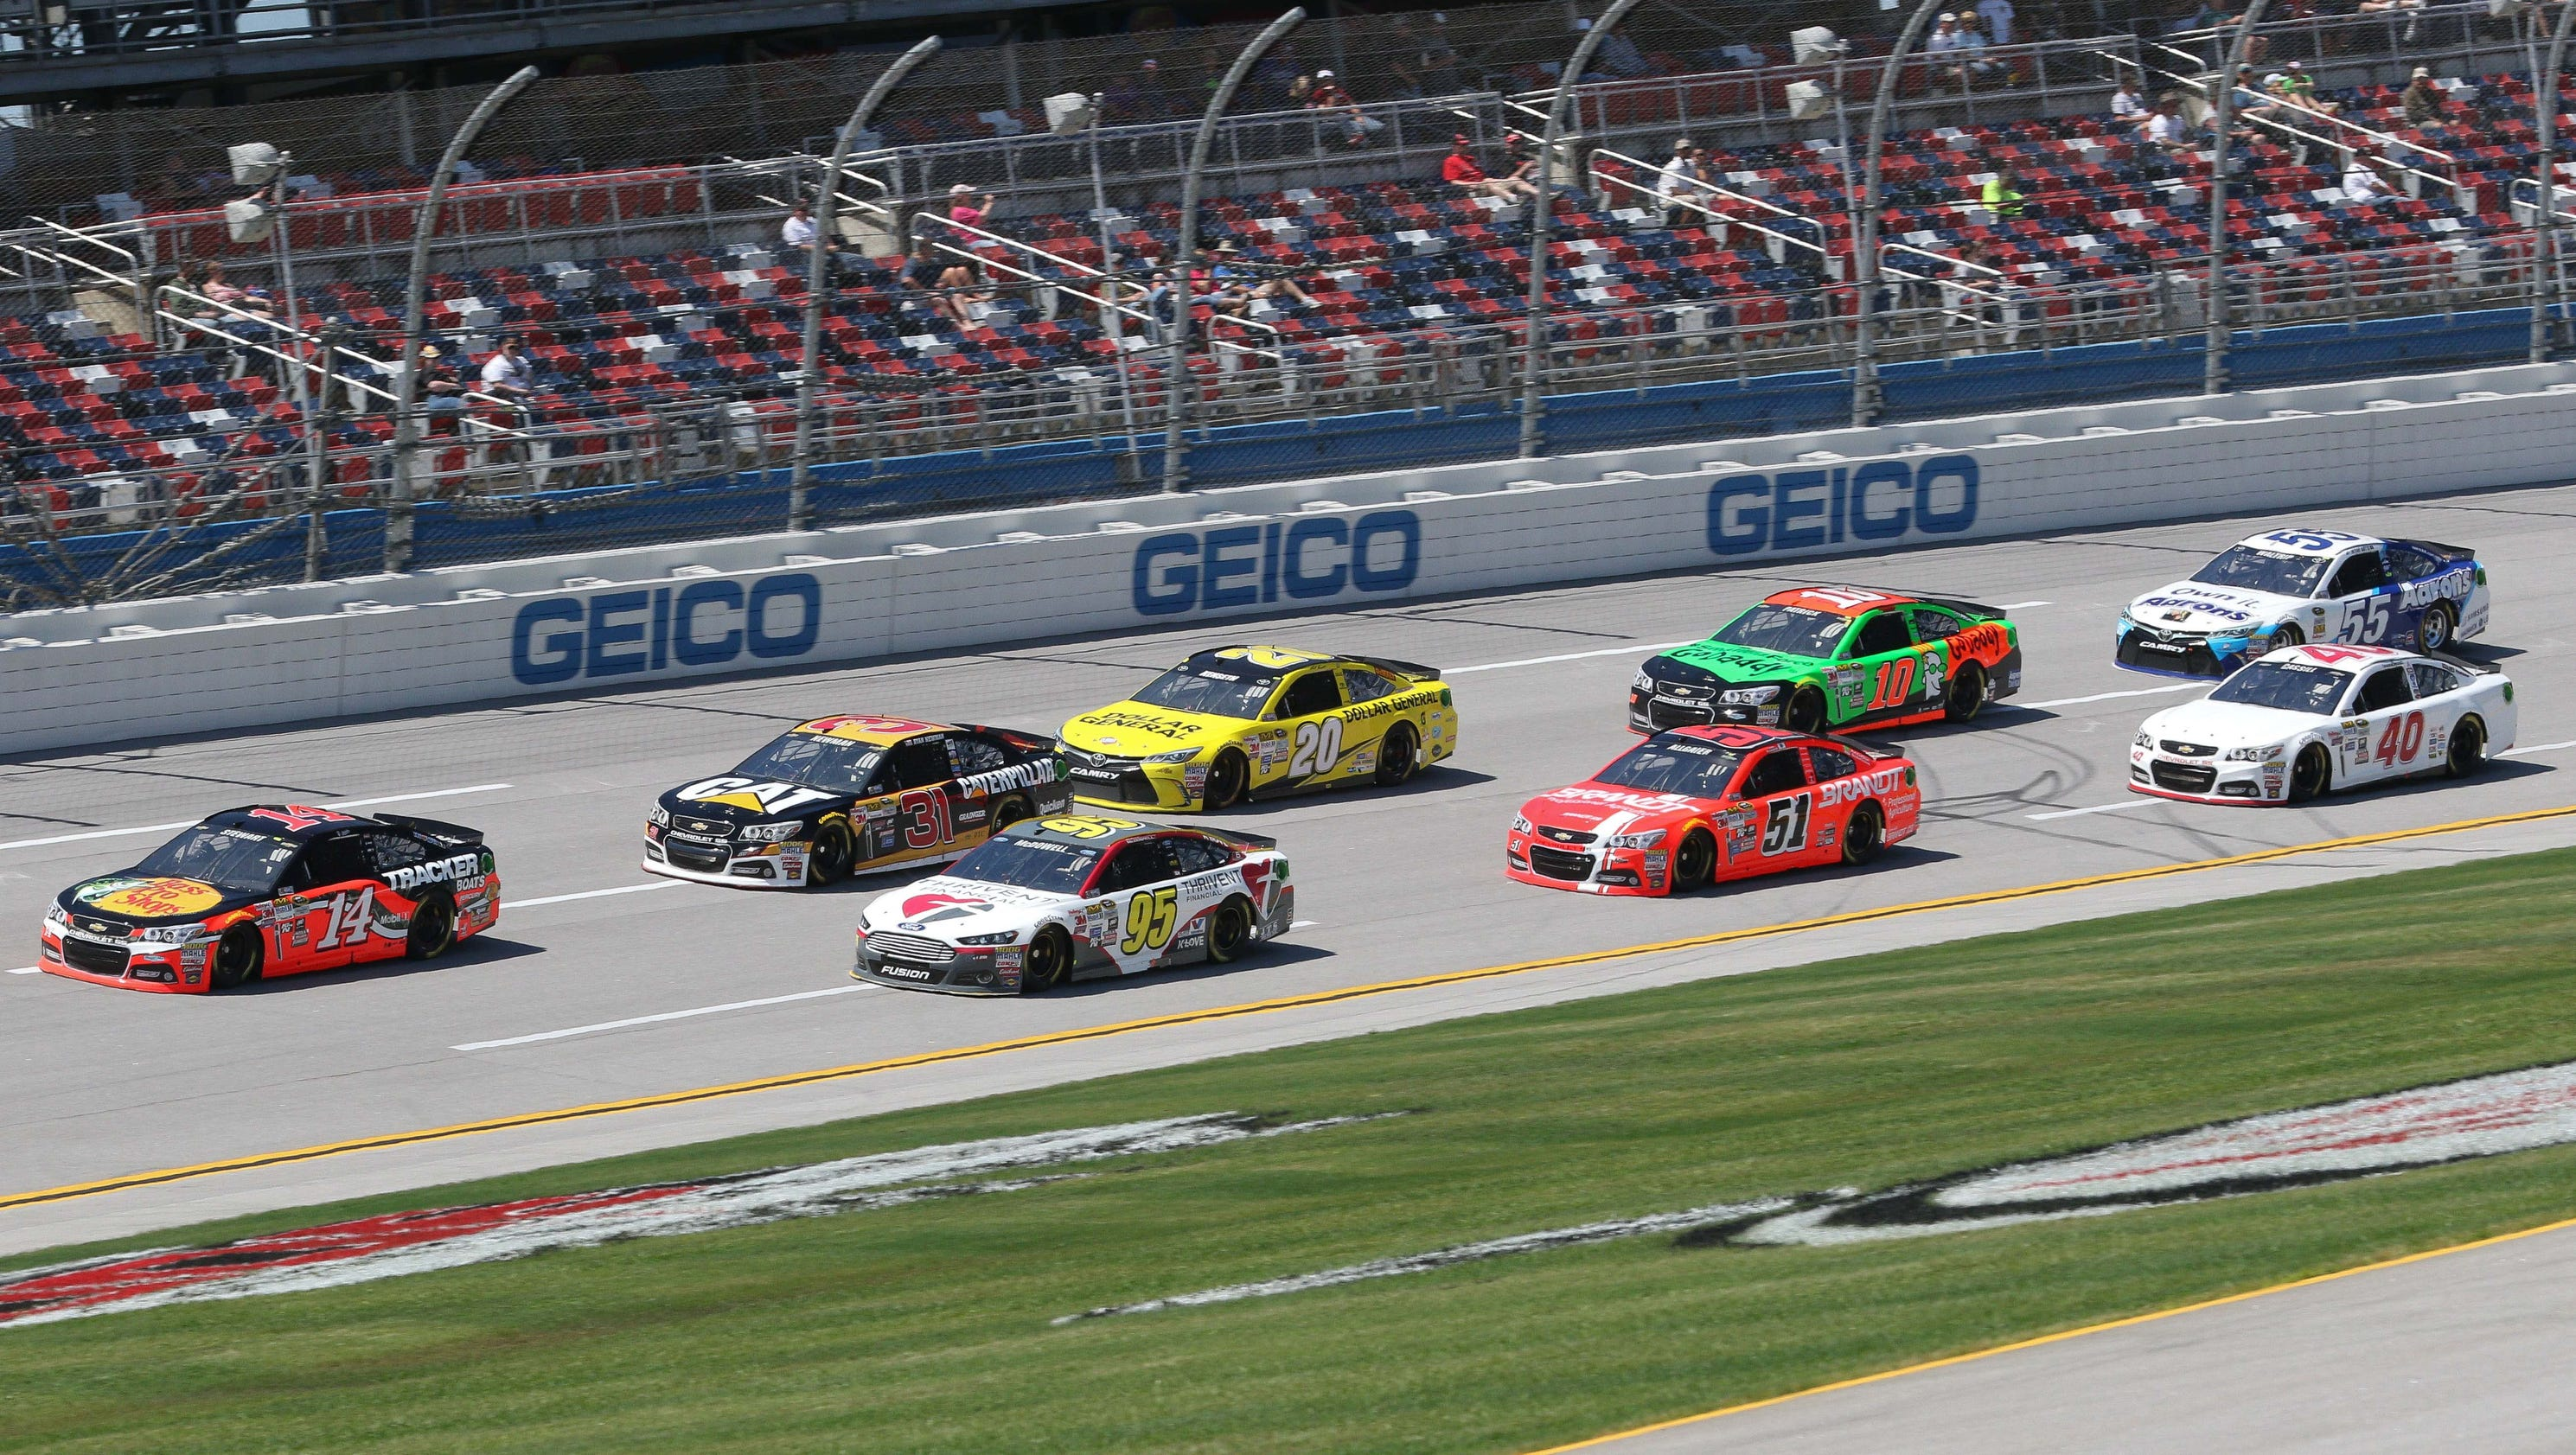 NASCAR at Talladega: Start time, lineup, TV schedule and more for GEICO 500